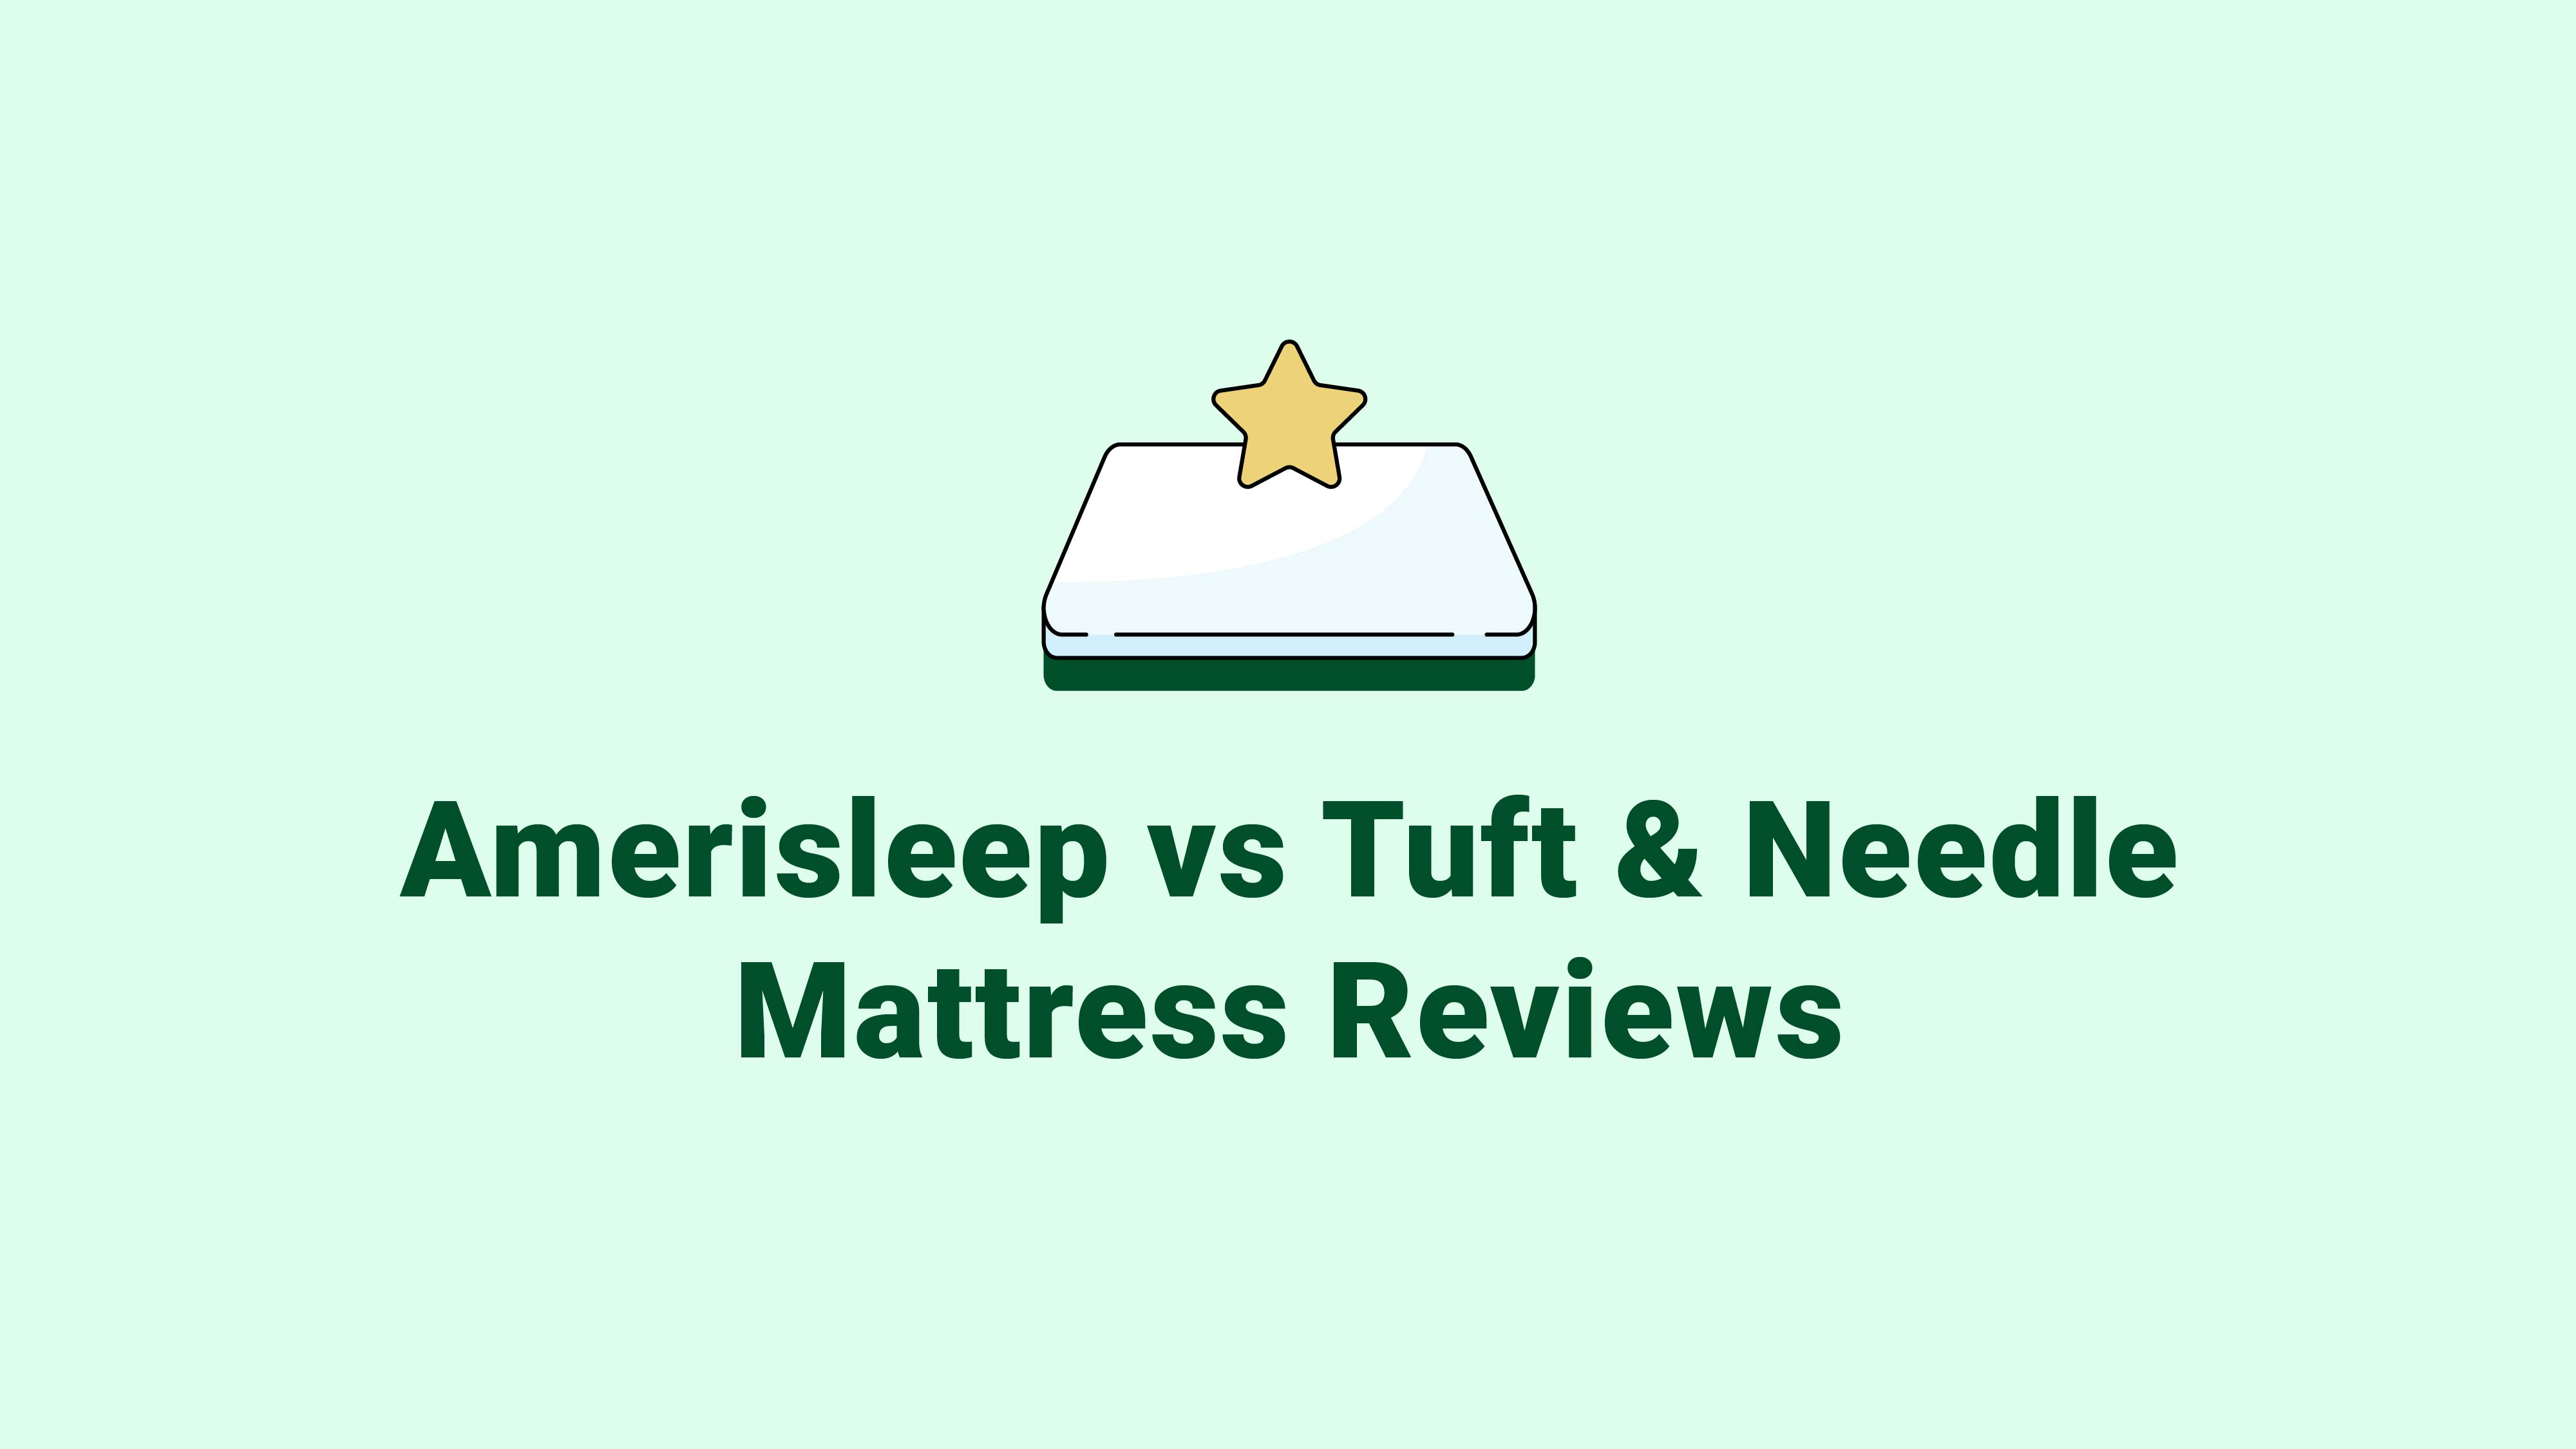 Amerisleep vs. Tuft & Needle Mattress Reviews